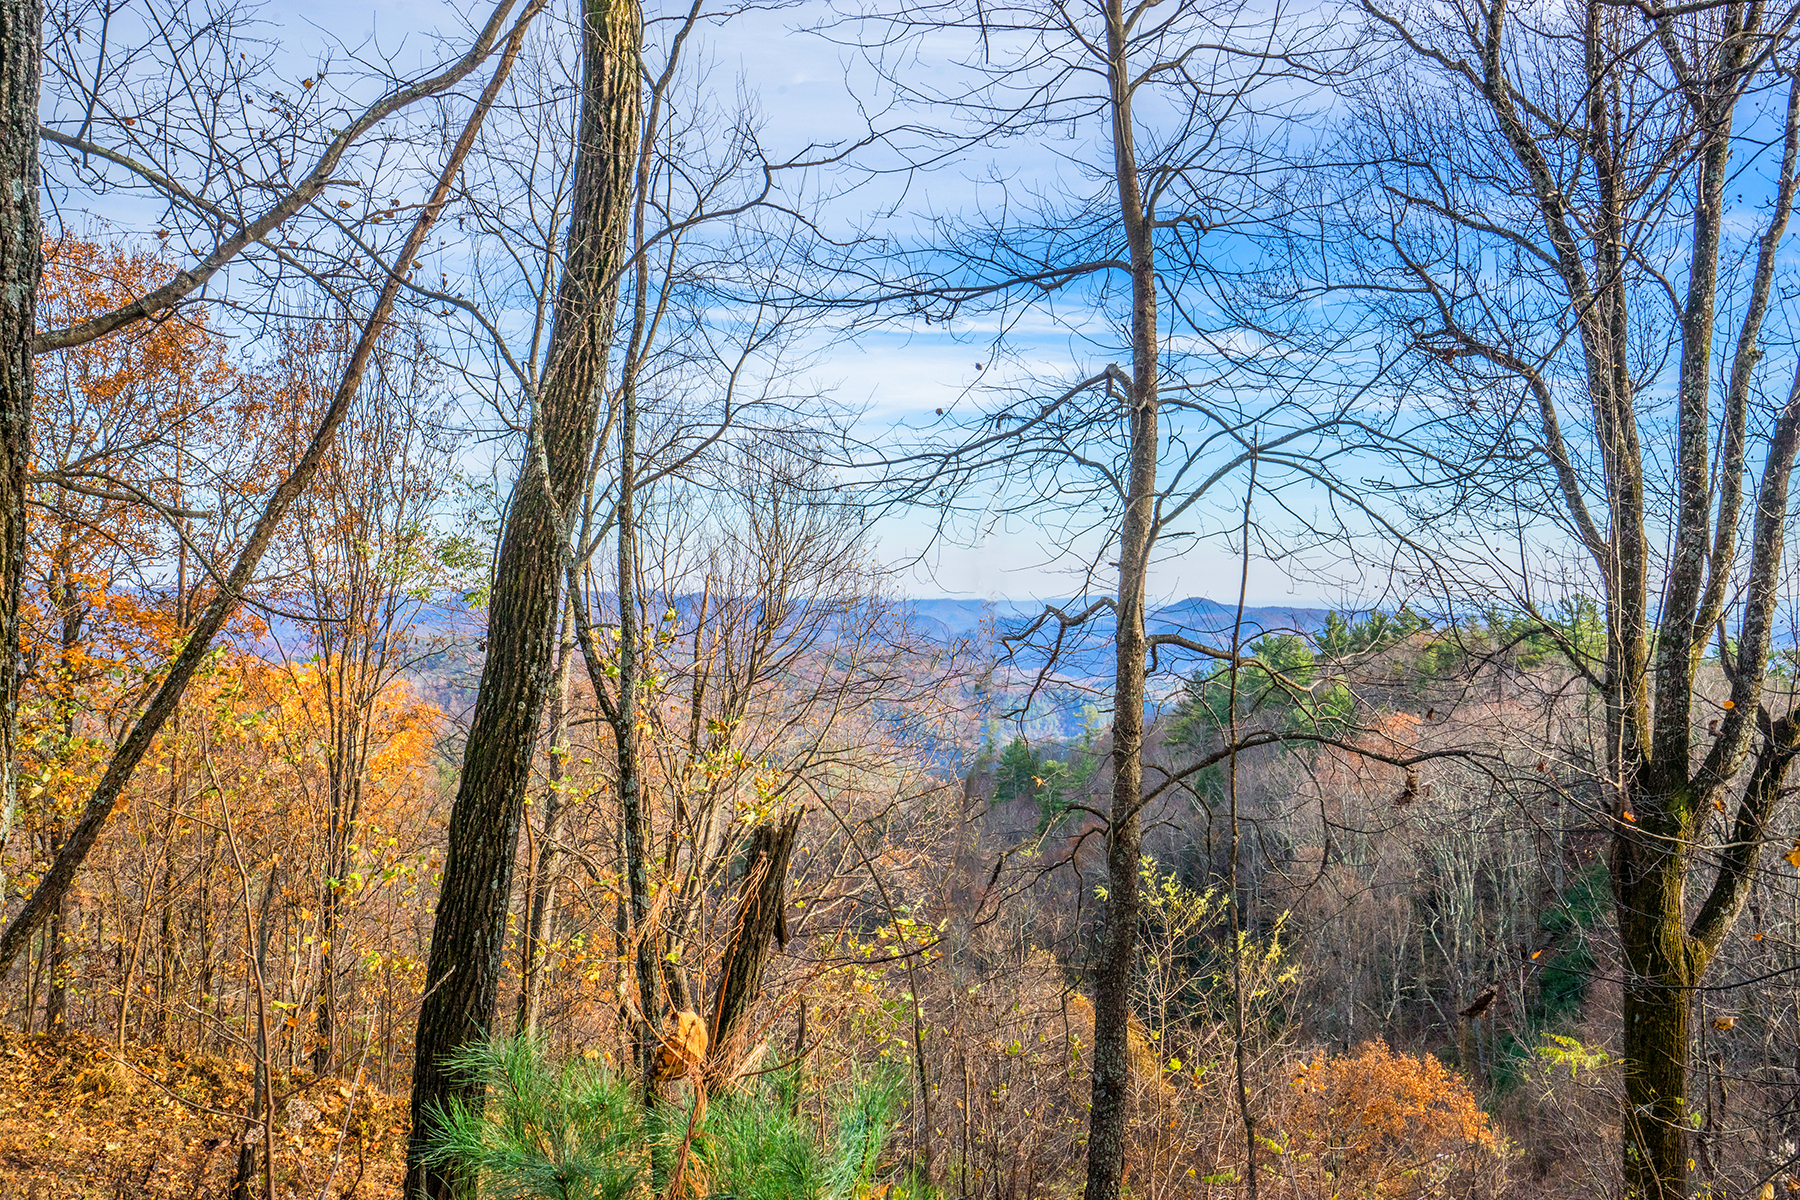 Land for Sale at BLOWING ROCK tbd Rocky Knob Rd, Blowing Rock, North Carolina, 28605 United States